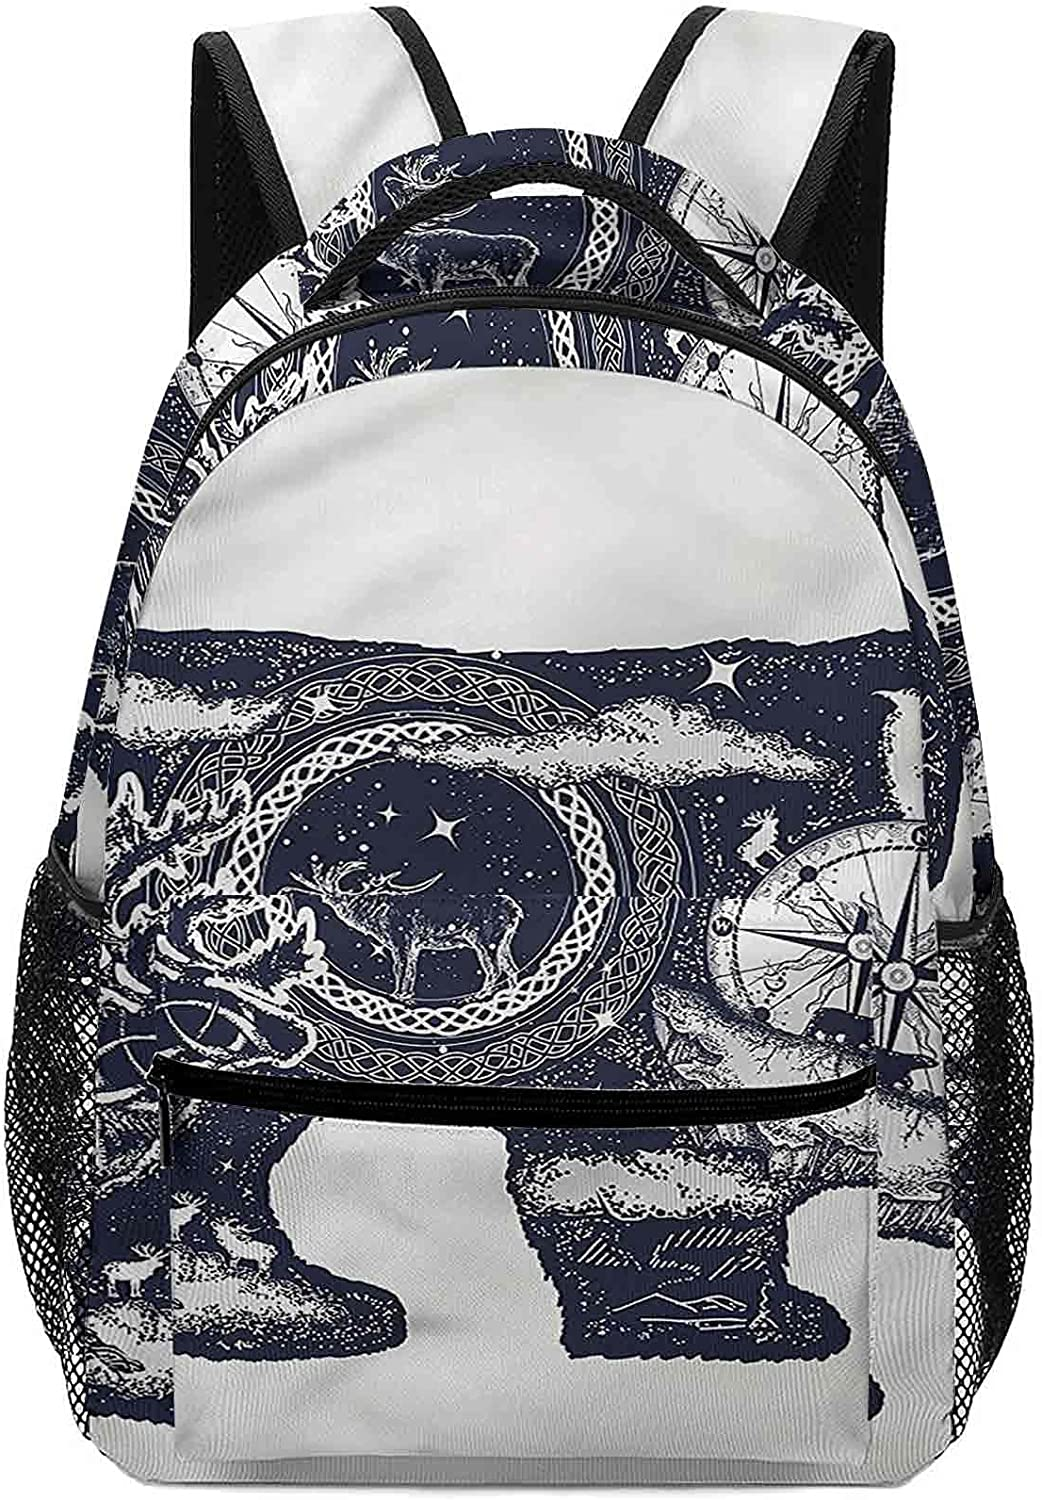 16.5 Inch Our shop most popular Backpack for Boys Tattoo Polar Perfect Cheap mail order specialty store Bear Girls